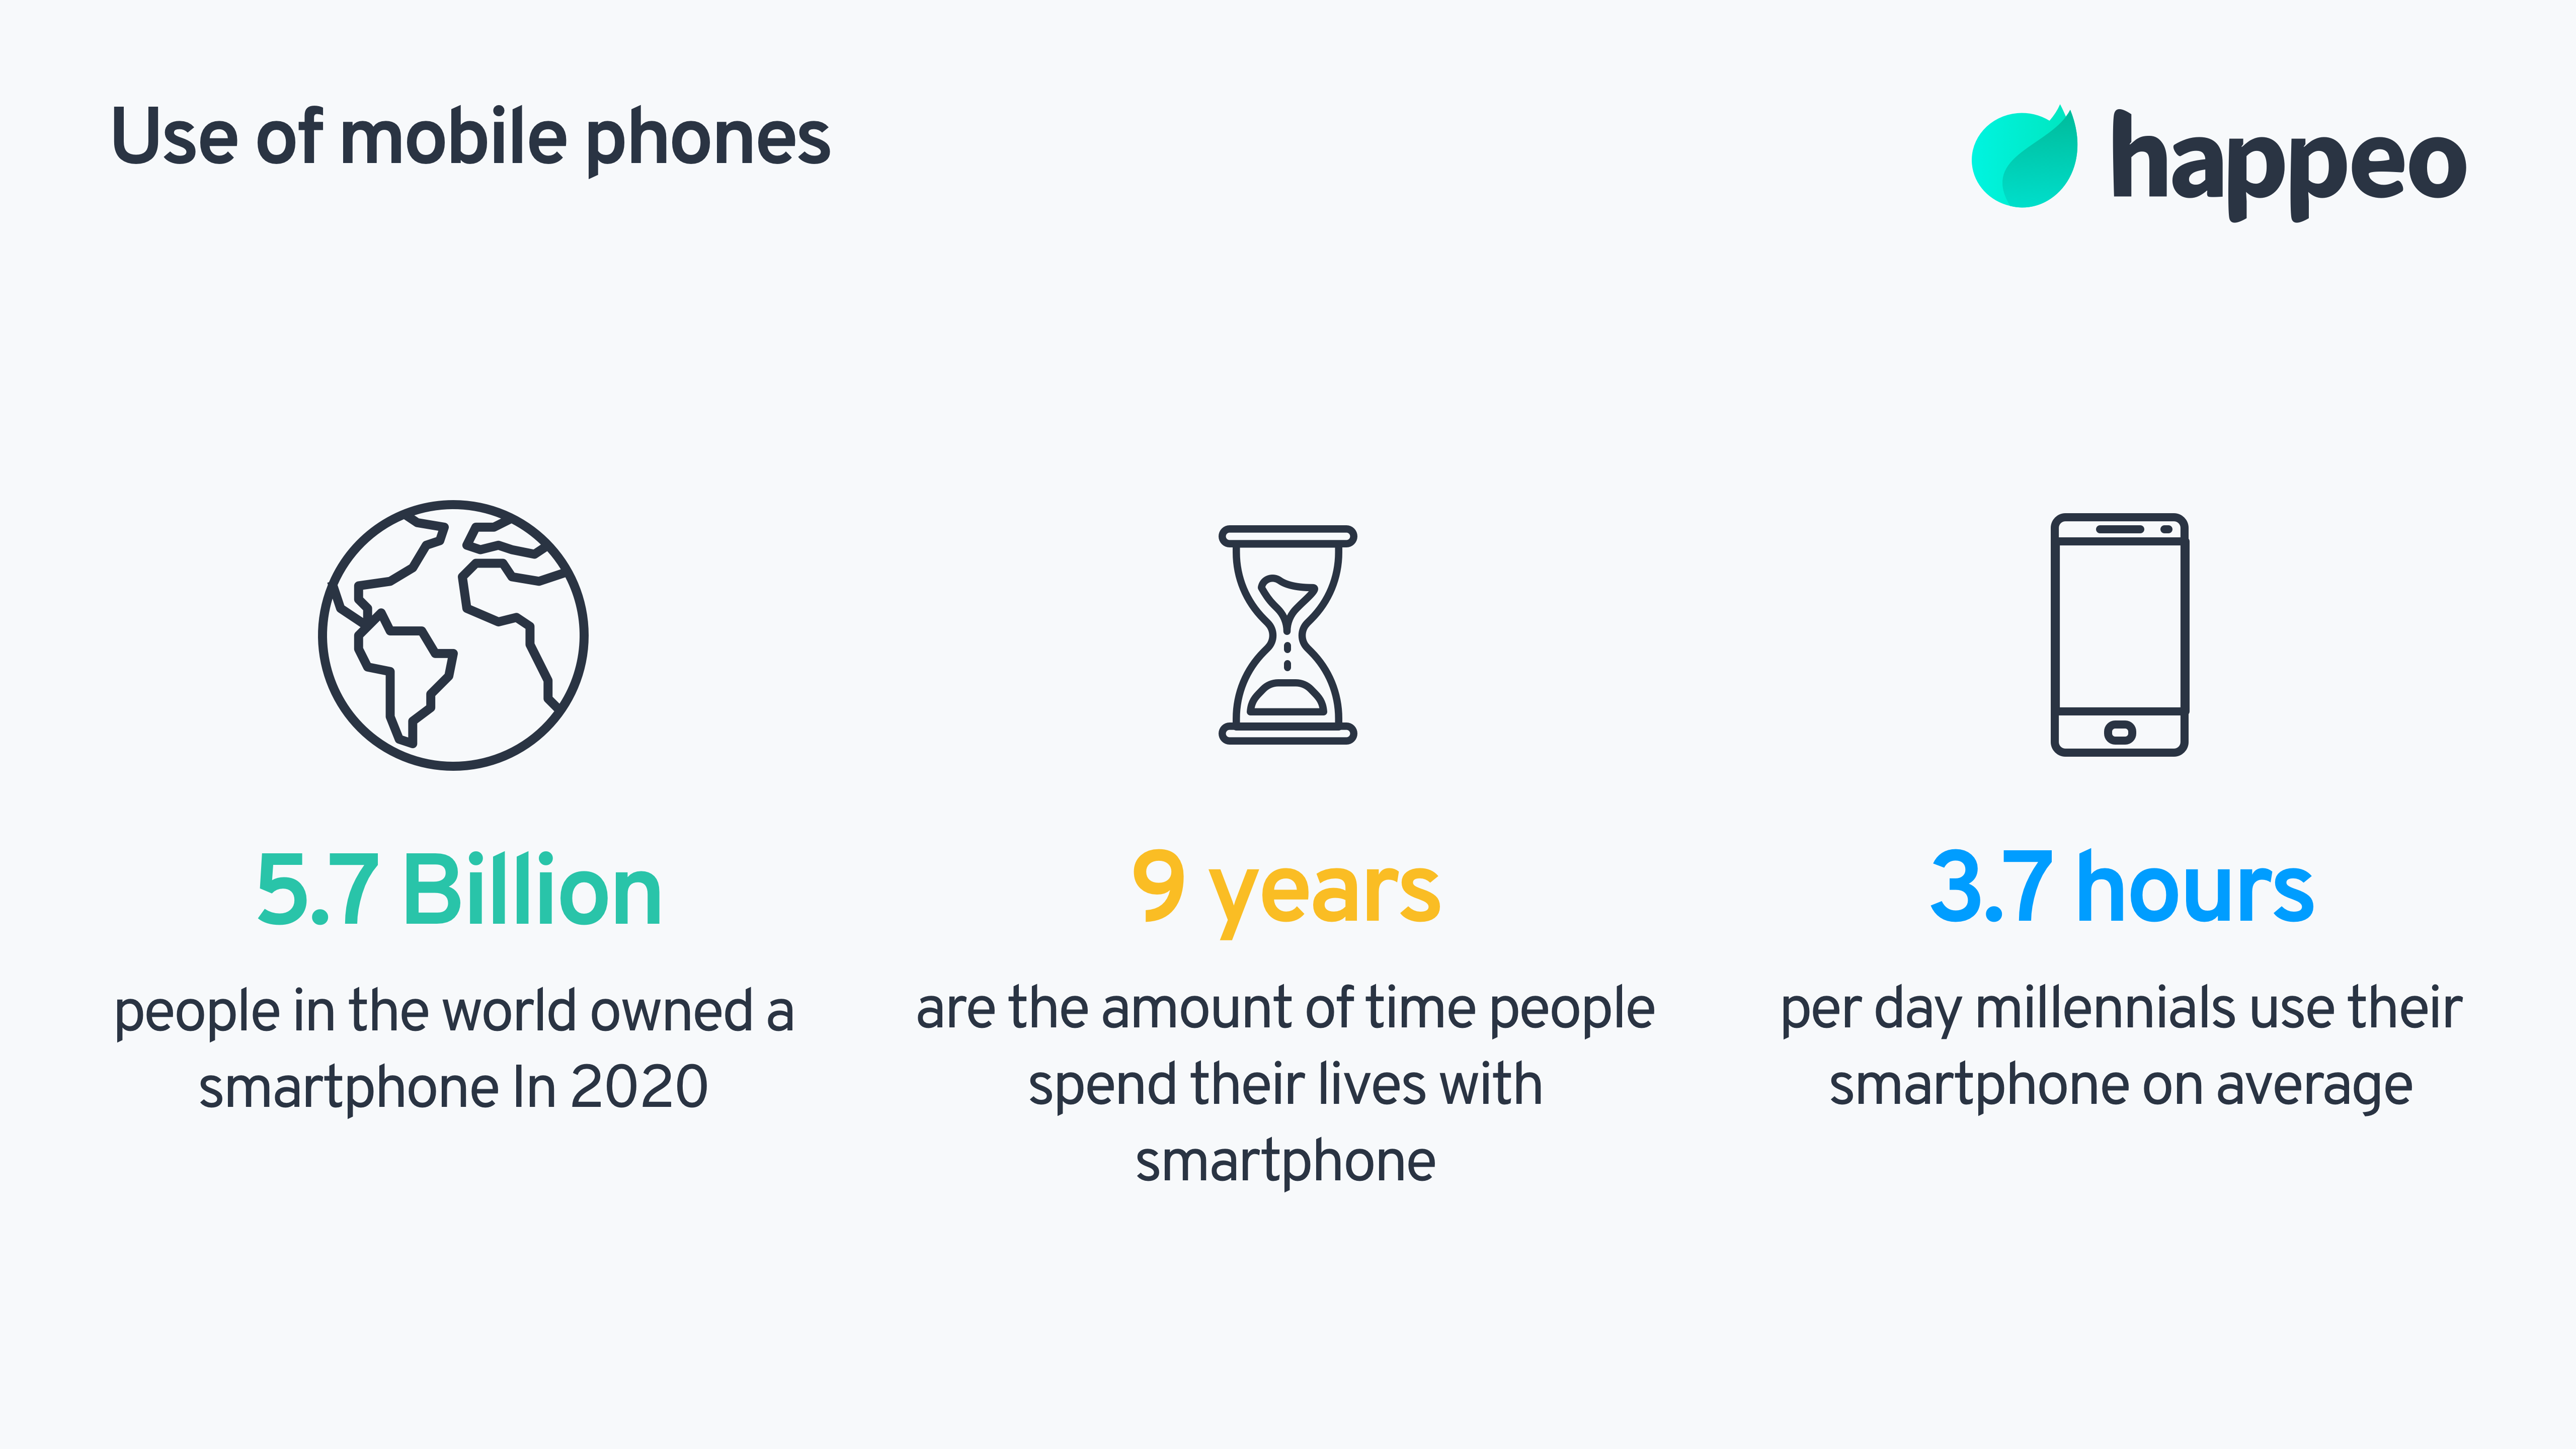 In 2020 more than 5.7 billion people in the world owned a smartphone